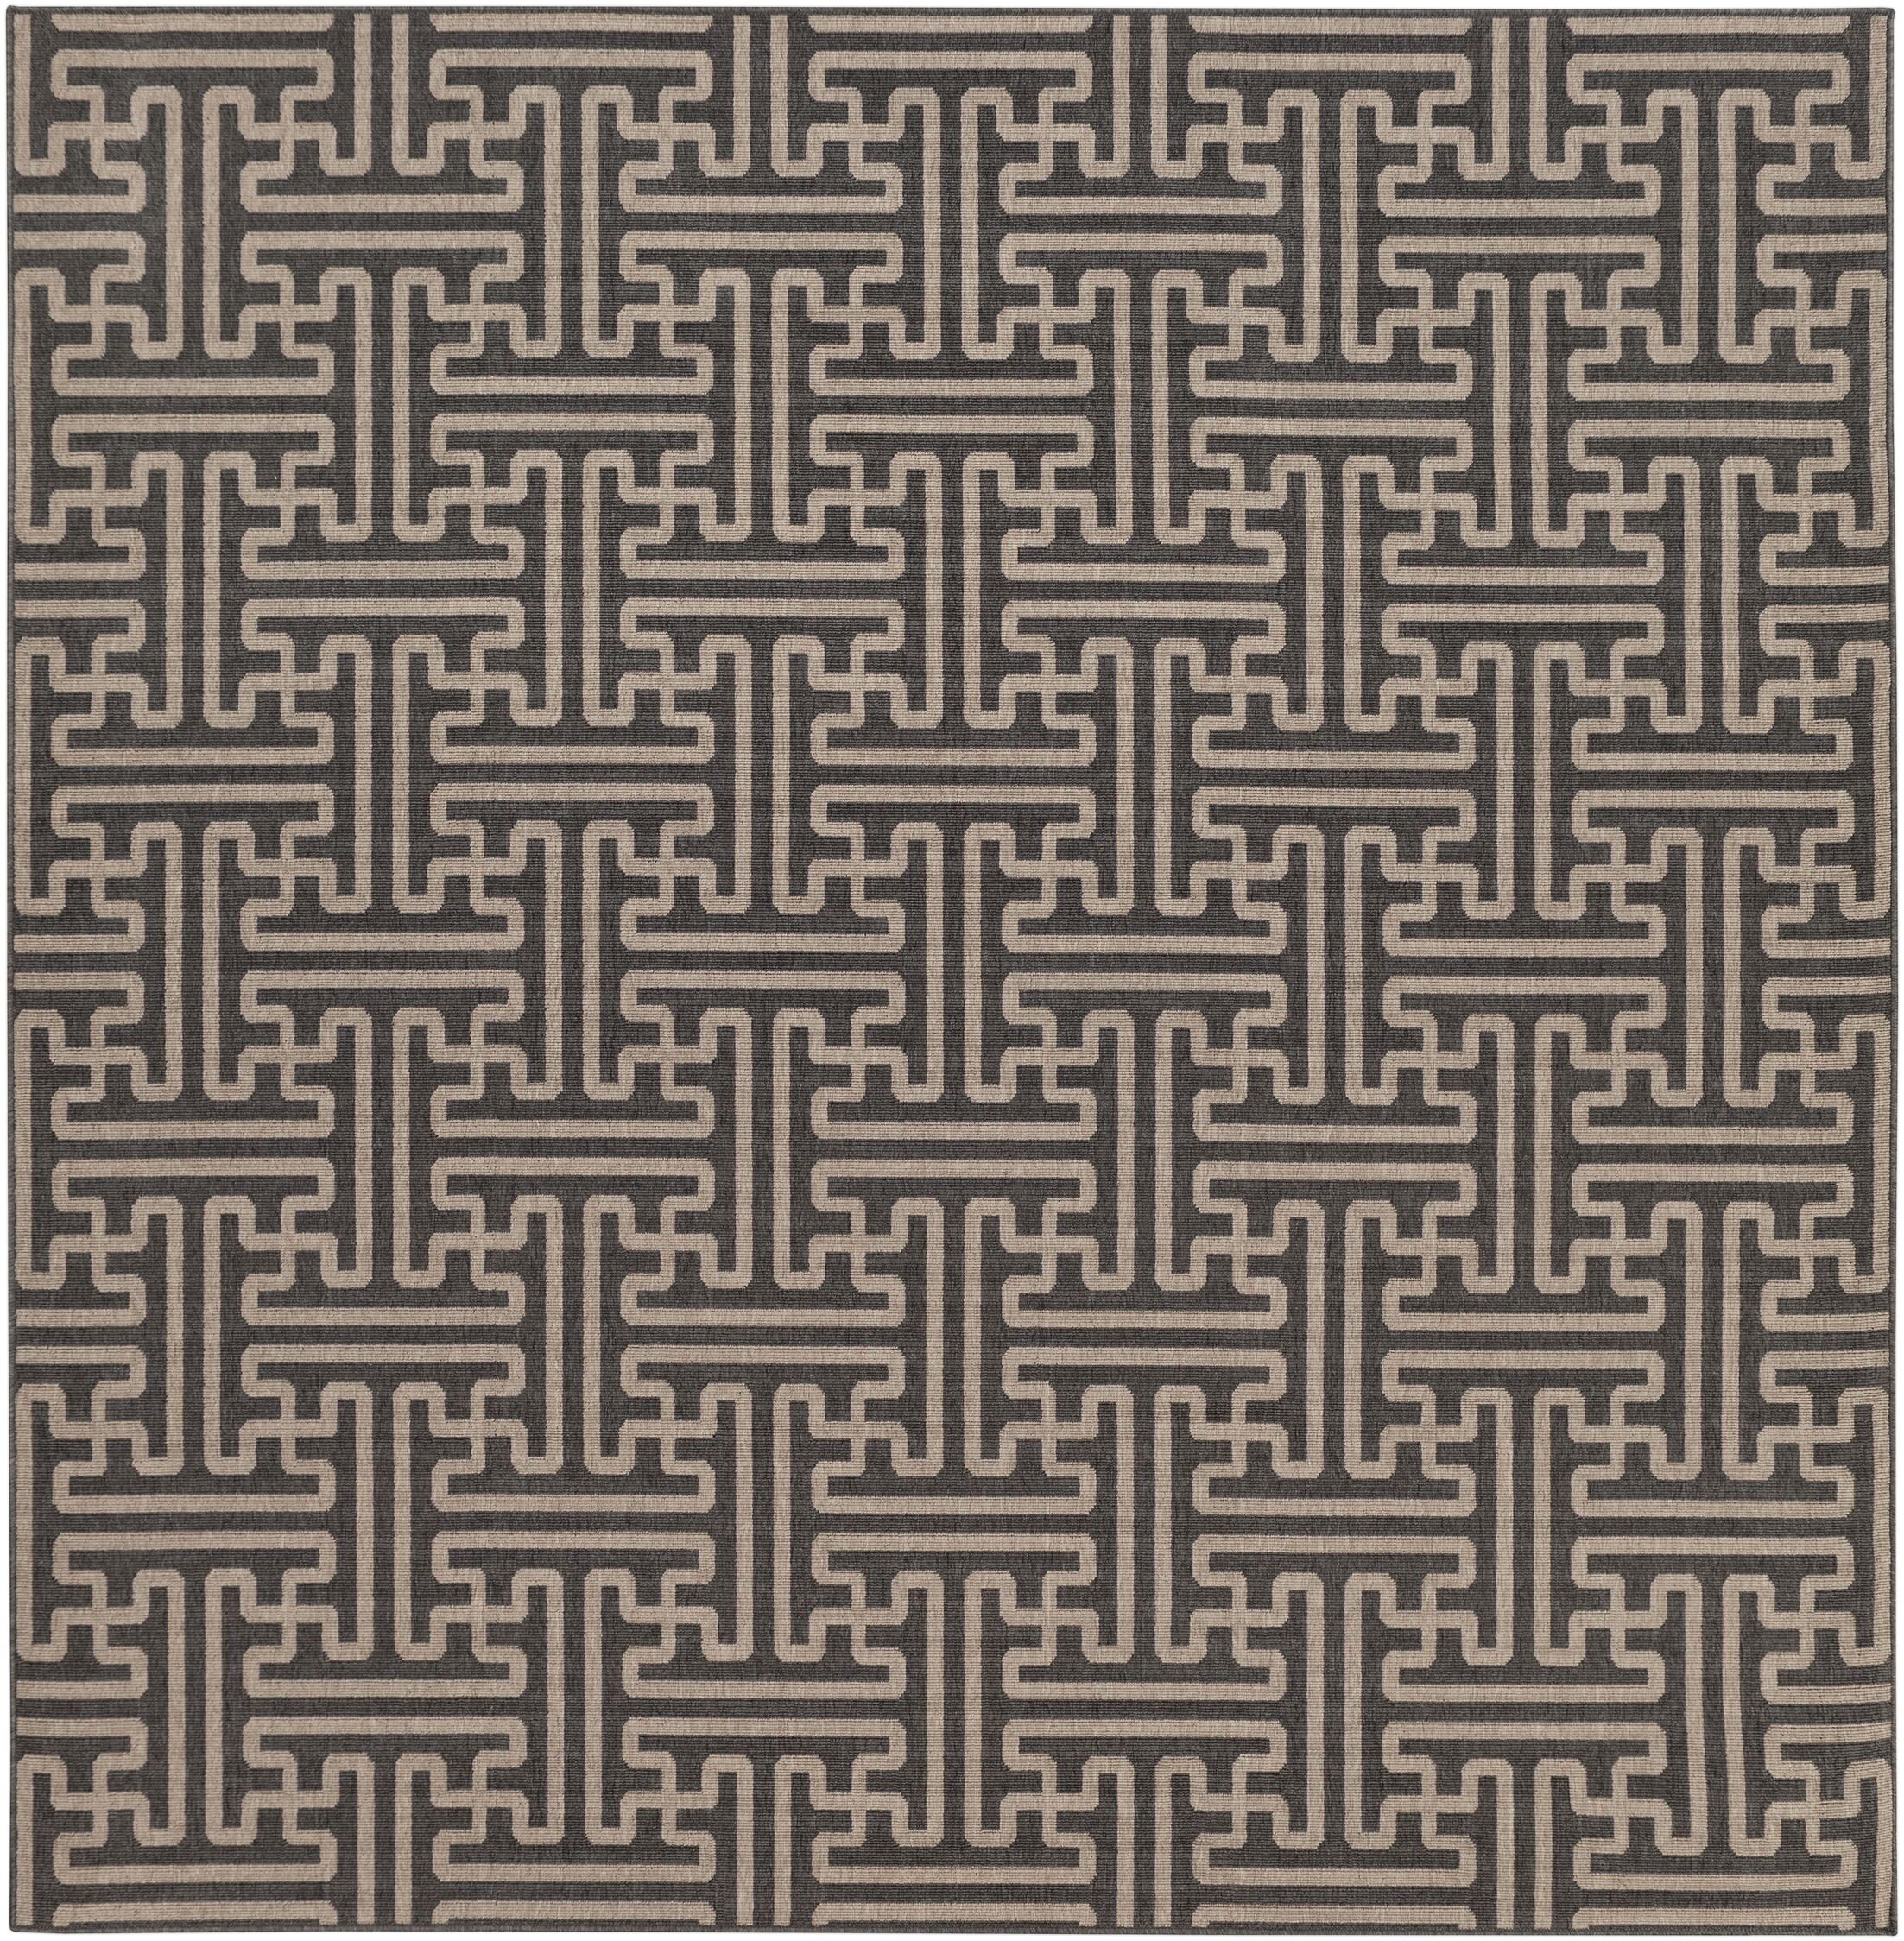 Borquez Black Indoor/Outdoor Area Rug Rug Size: Square 8'9